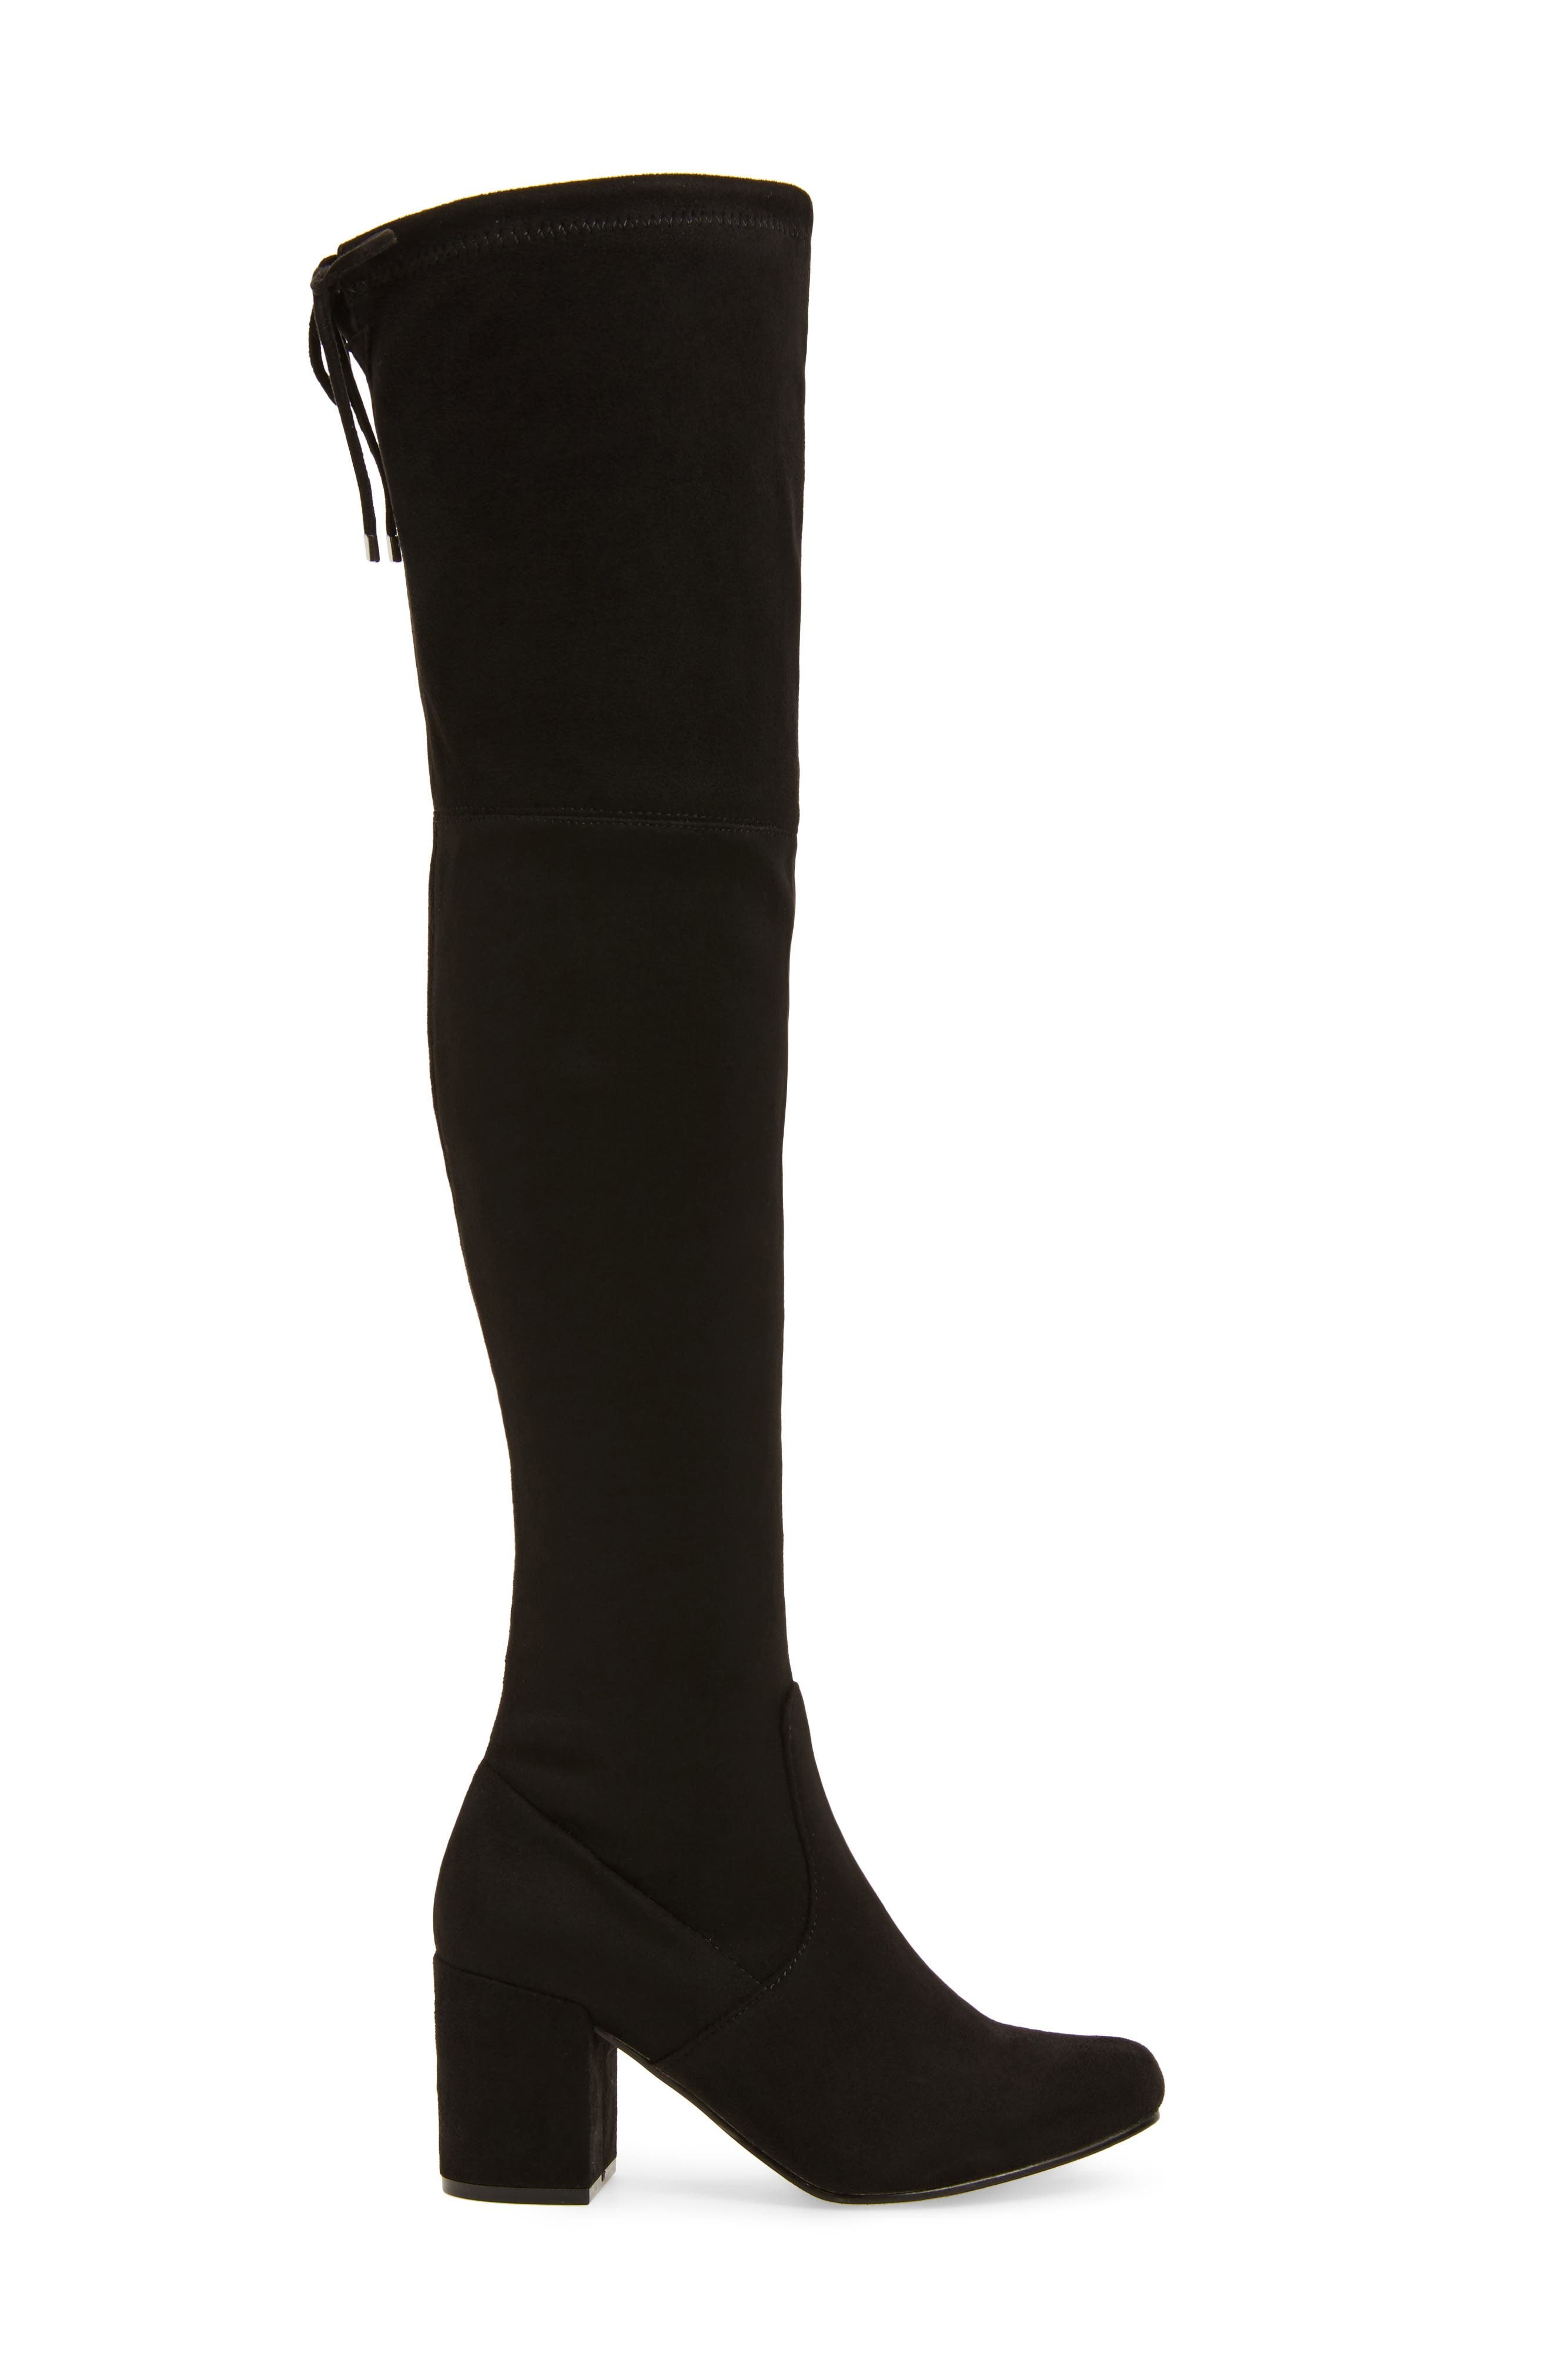 Heartbeat Over the Knee Boot,                             Alternate thumbnail 3, color,                             Black